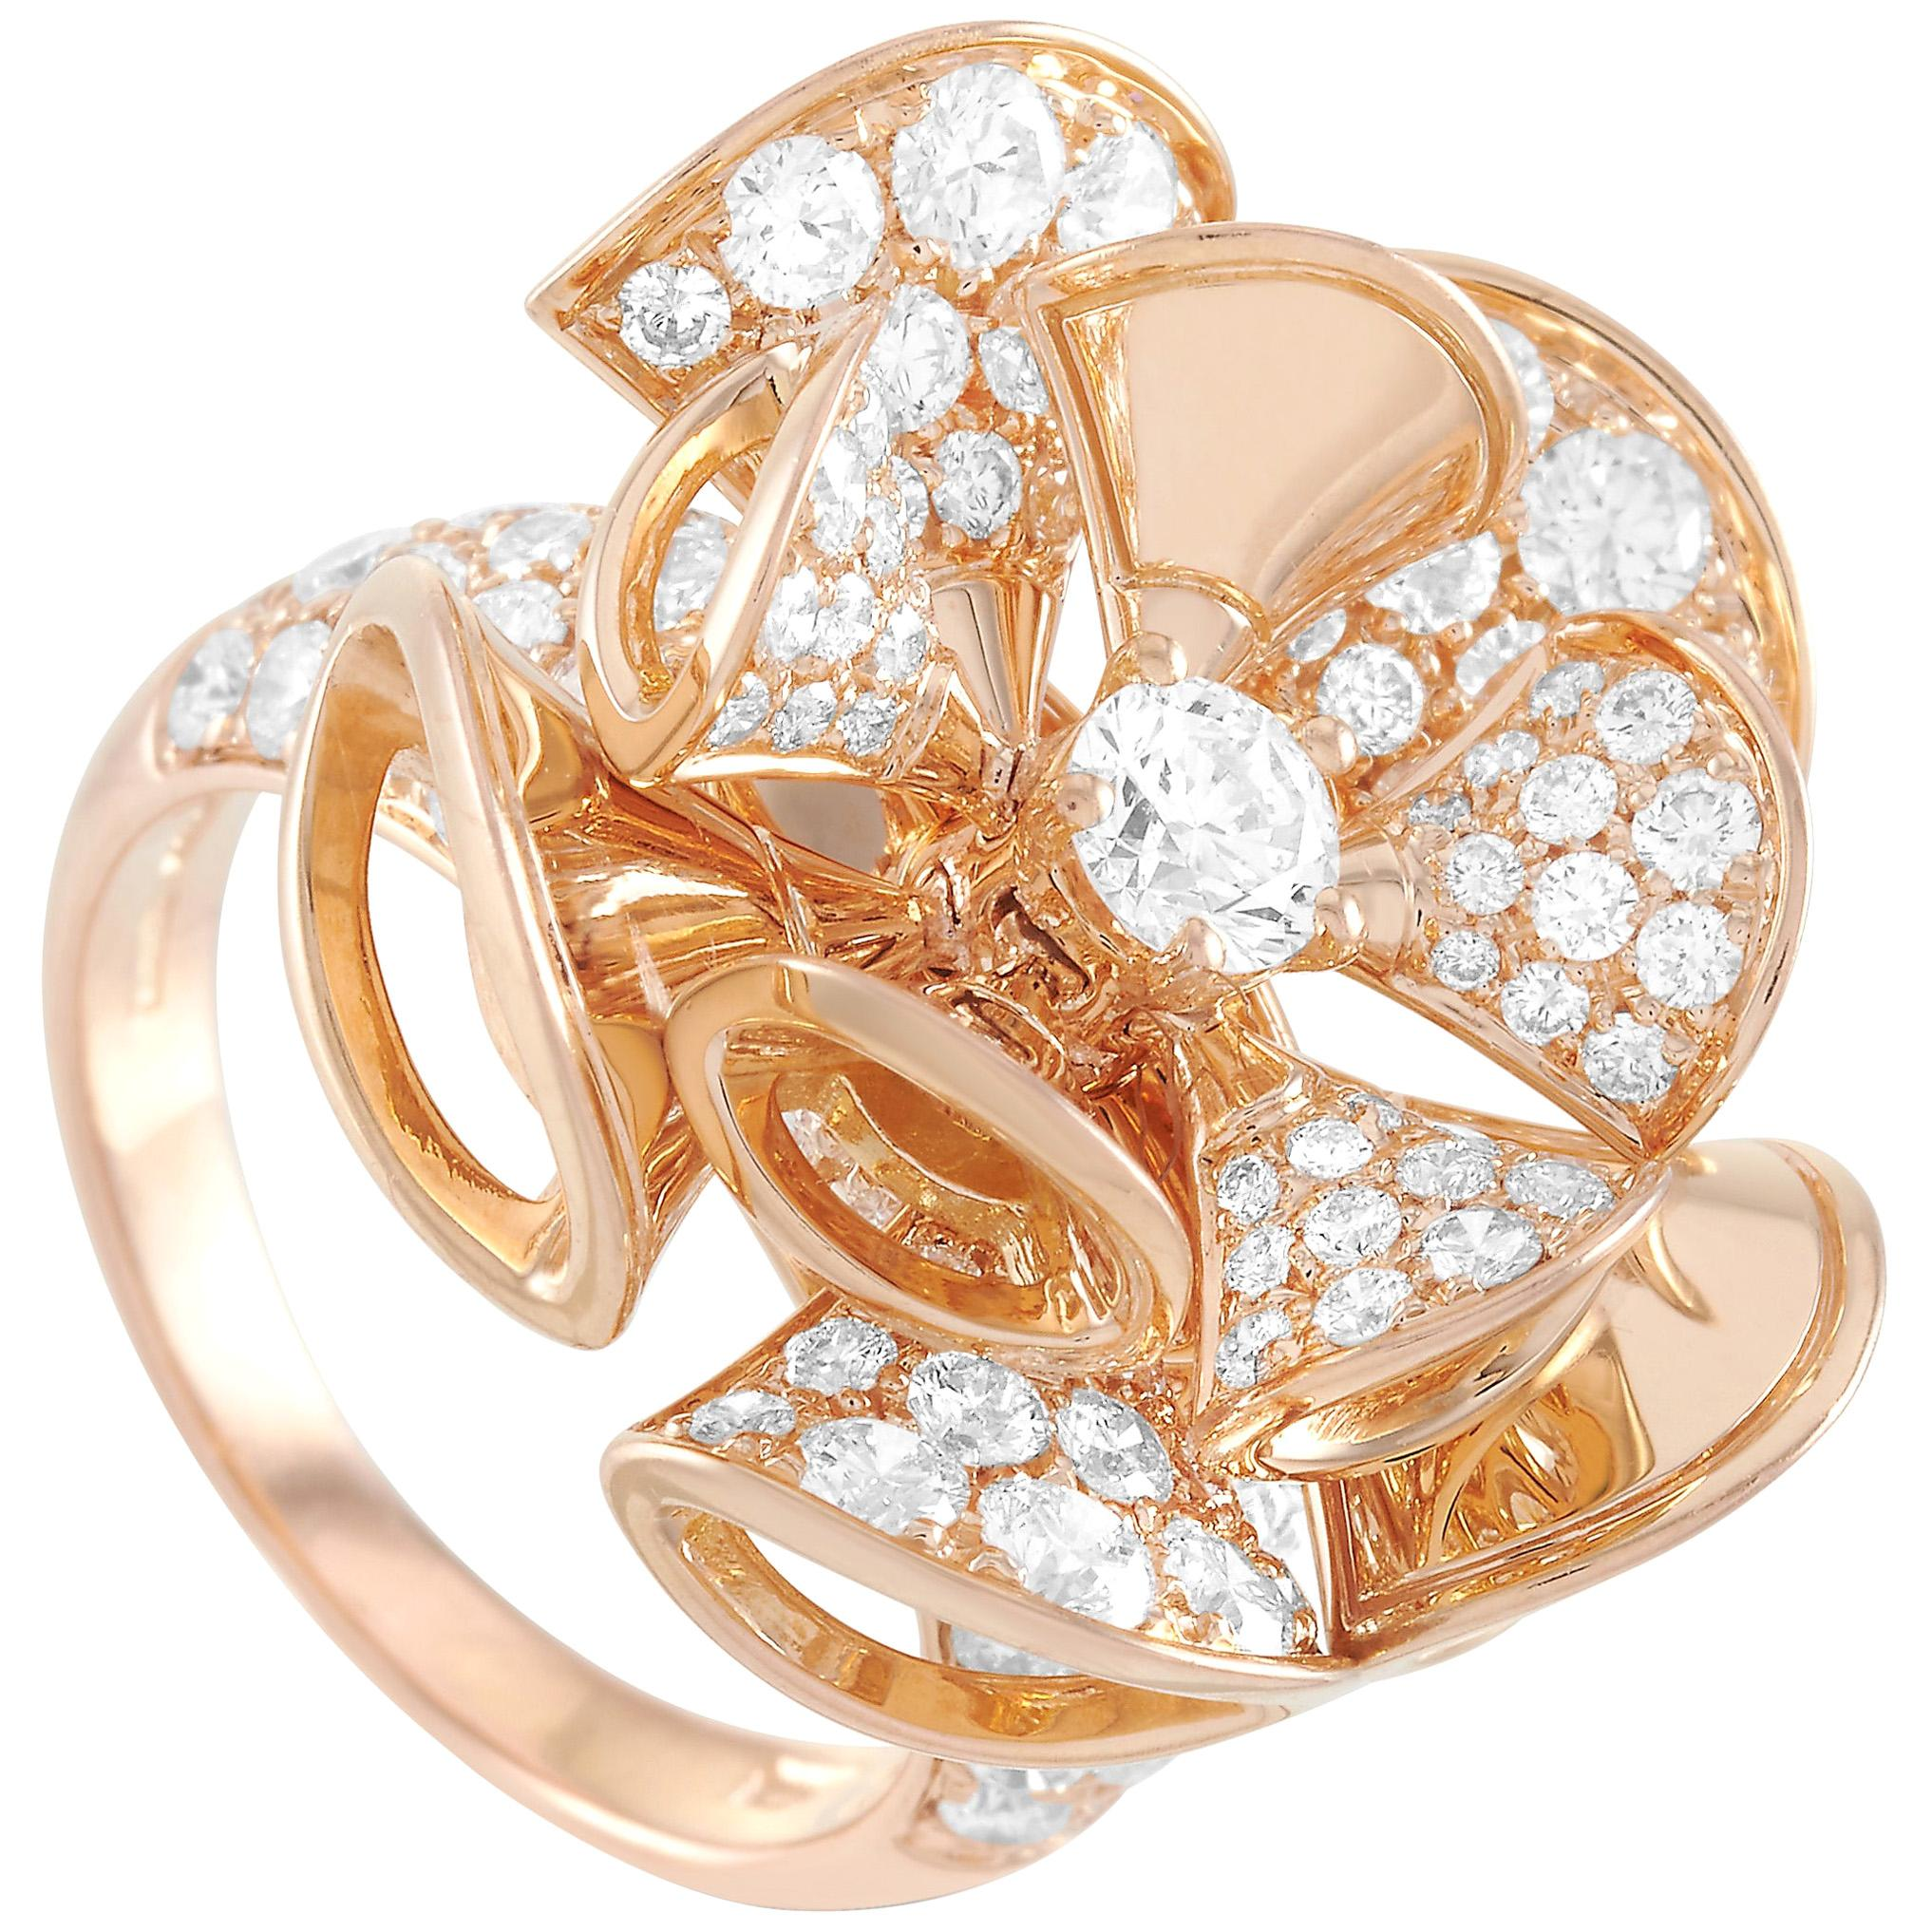 Divas' Dream Ring